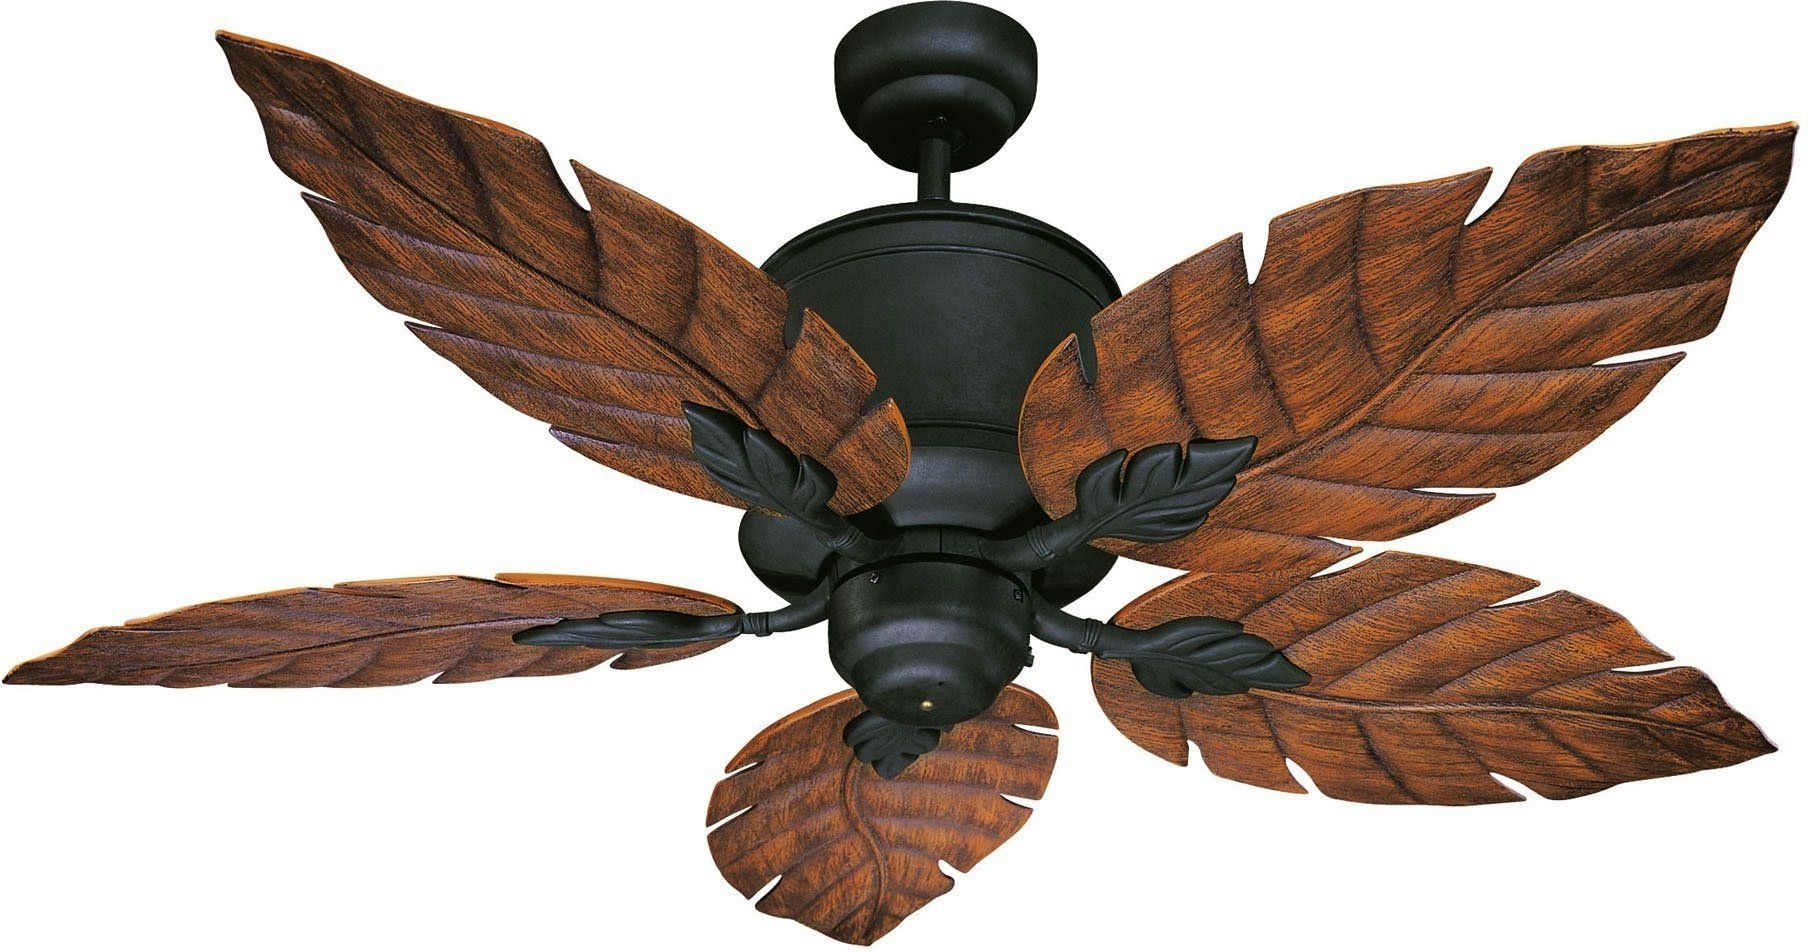 "Horseshoe Black Portico Portico 52"" Five Blade Outdoor Ceiling Fan For Best And Newest Outdoor Ceiling Fans With Leaf Blades (View 4 of 20)"